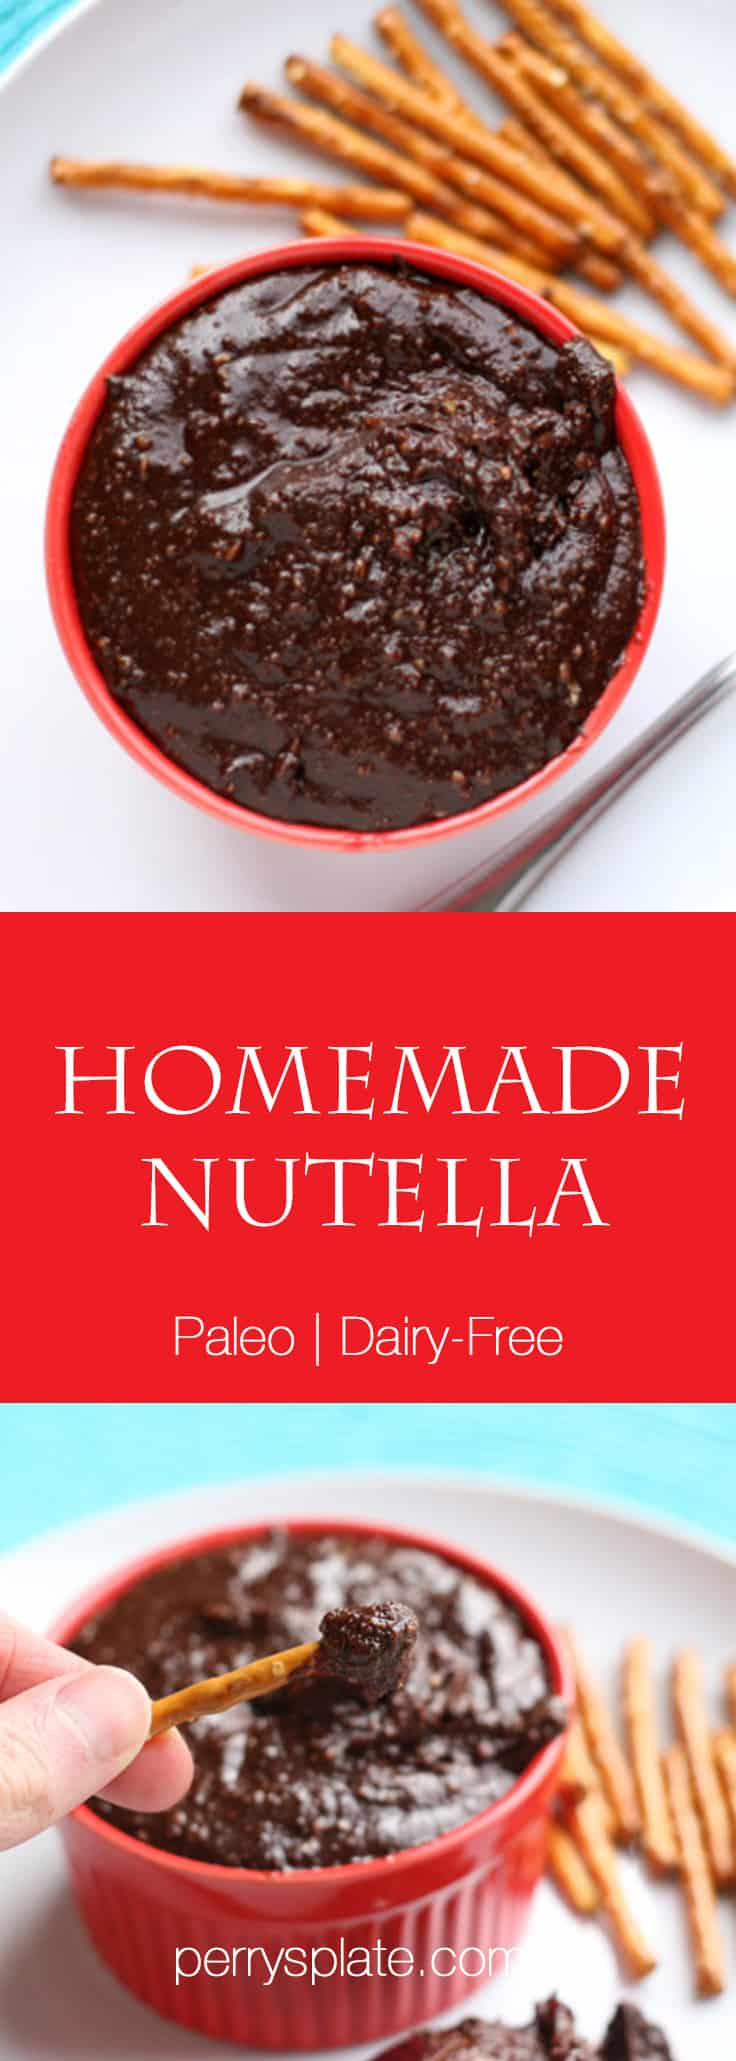 Homemade Nutella | nutella recipes | gluten free recipes | dairy free recipes | paleo dessert recipes | gluten-free recipes | nutella recipes | perrysplate.com